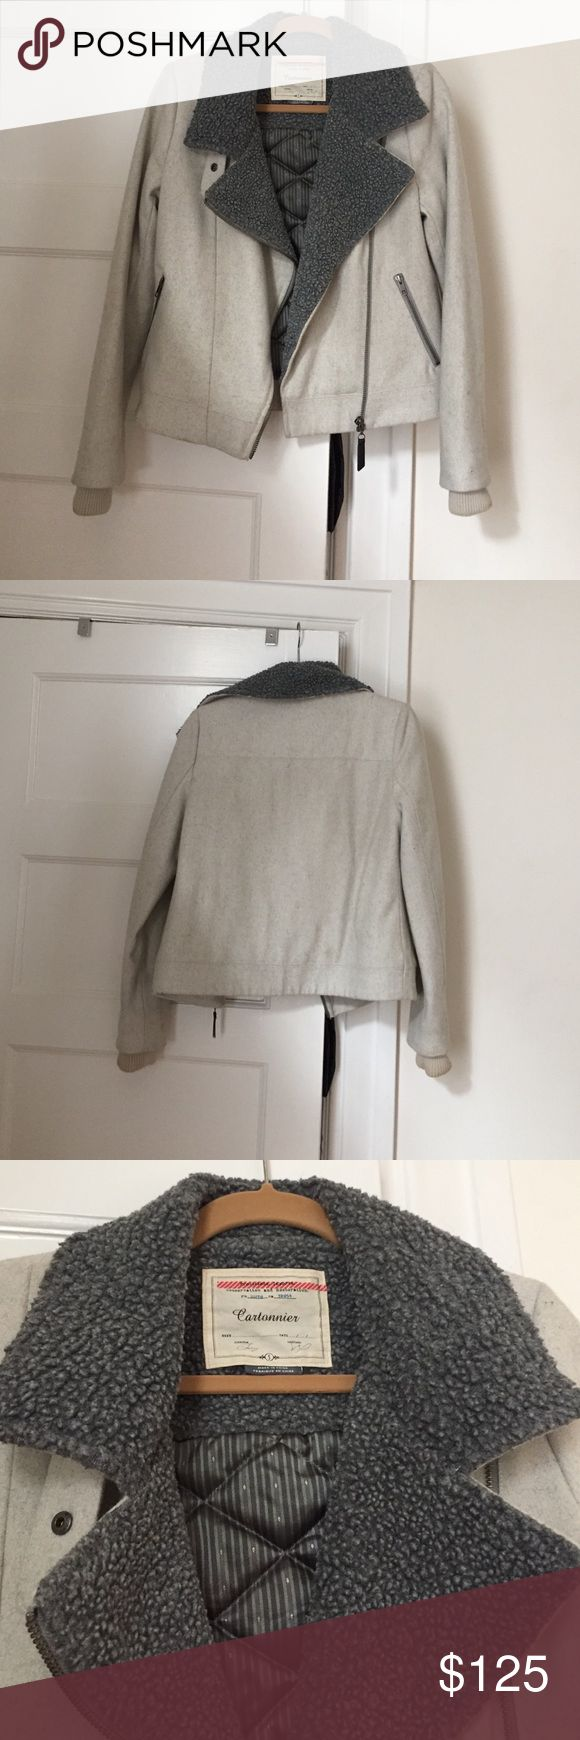 Anthropologie Wool bomber jacket Size small, cream and grey wool bomber jacket. Amazing fall piece! Anthropologie Jackets & Coats